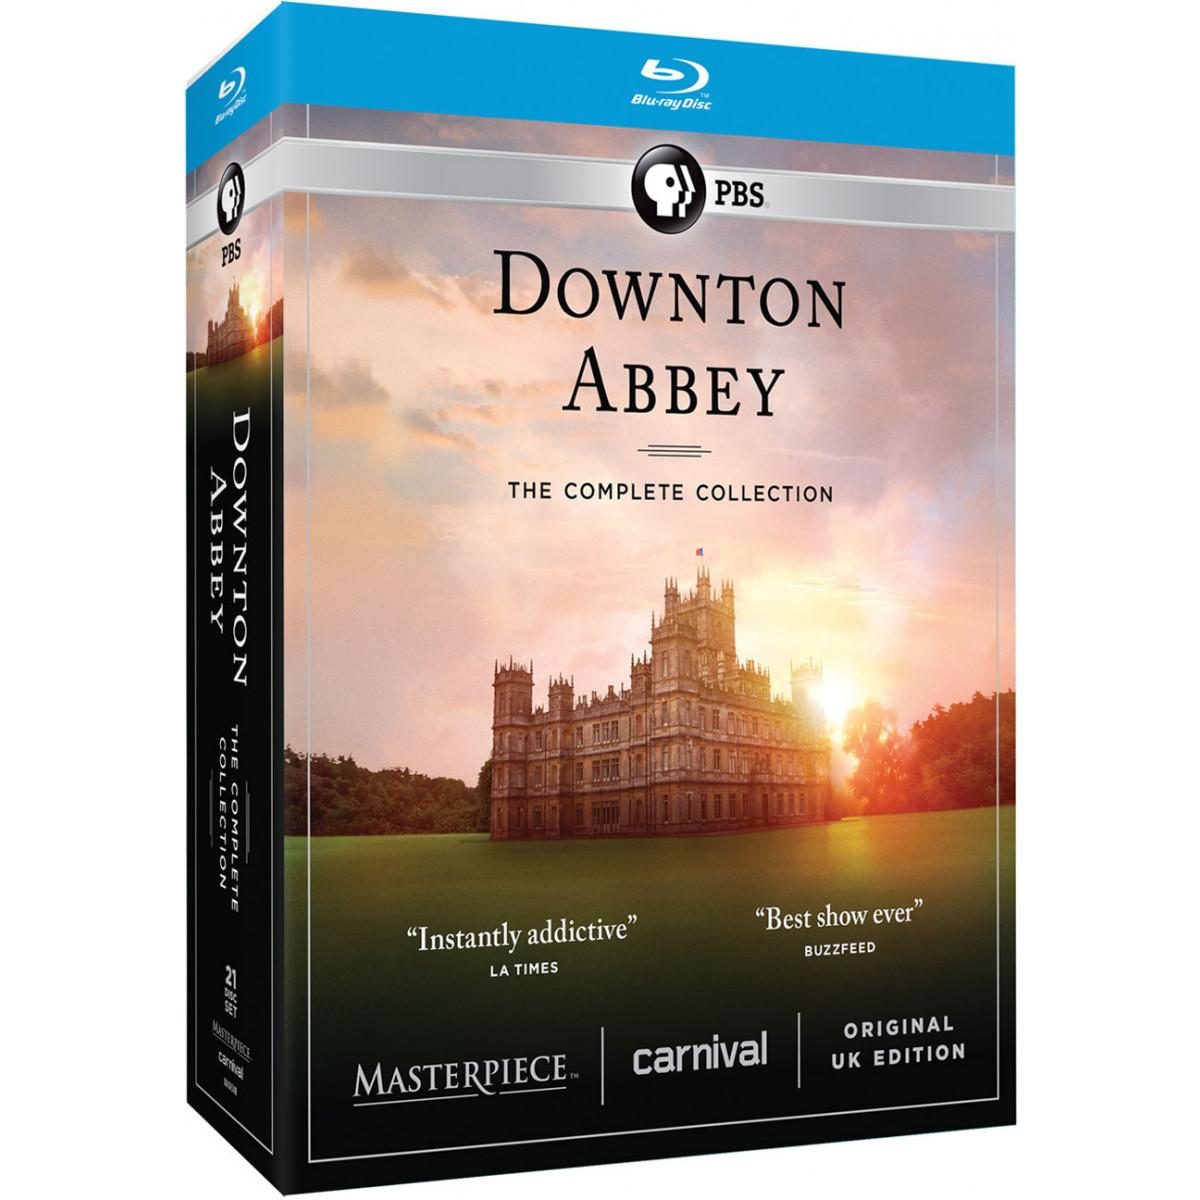 Downton Abbey Complete Collection Blu-ray